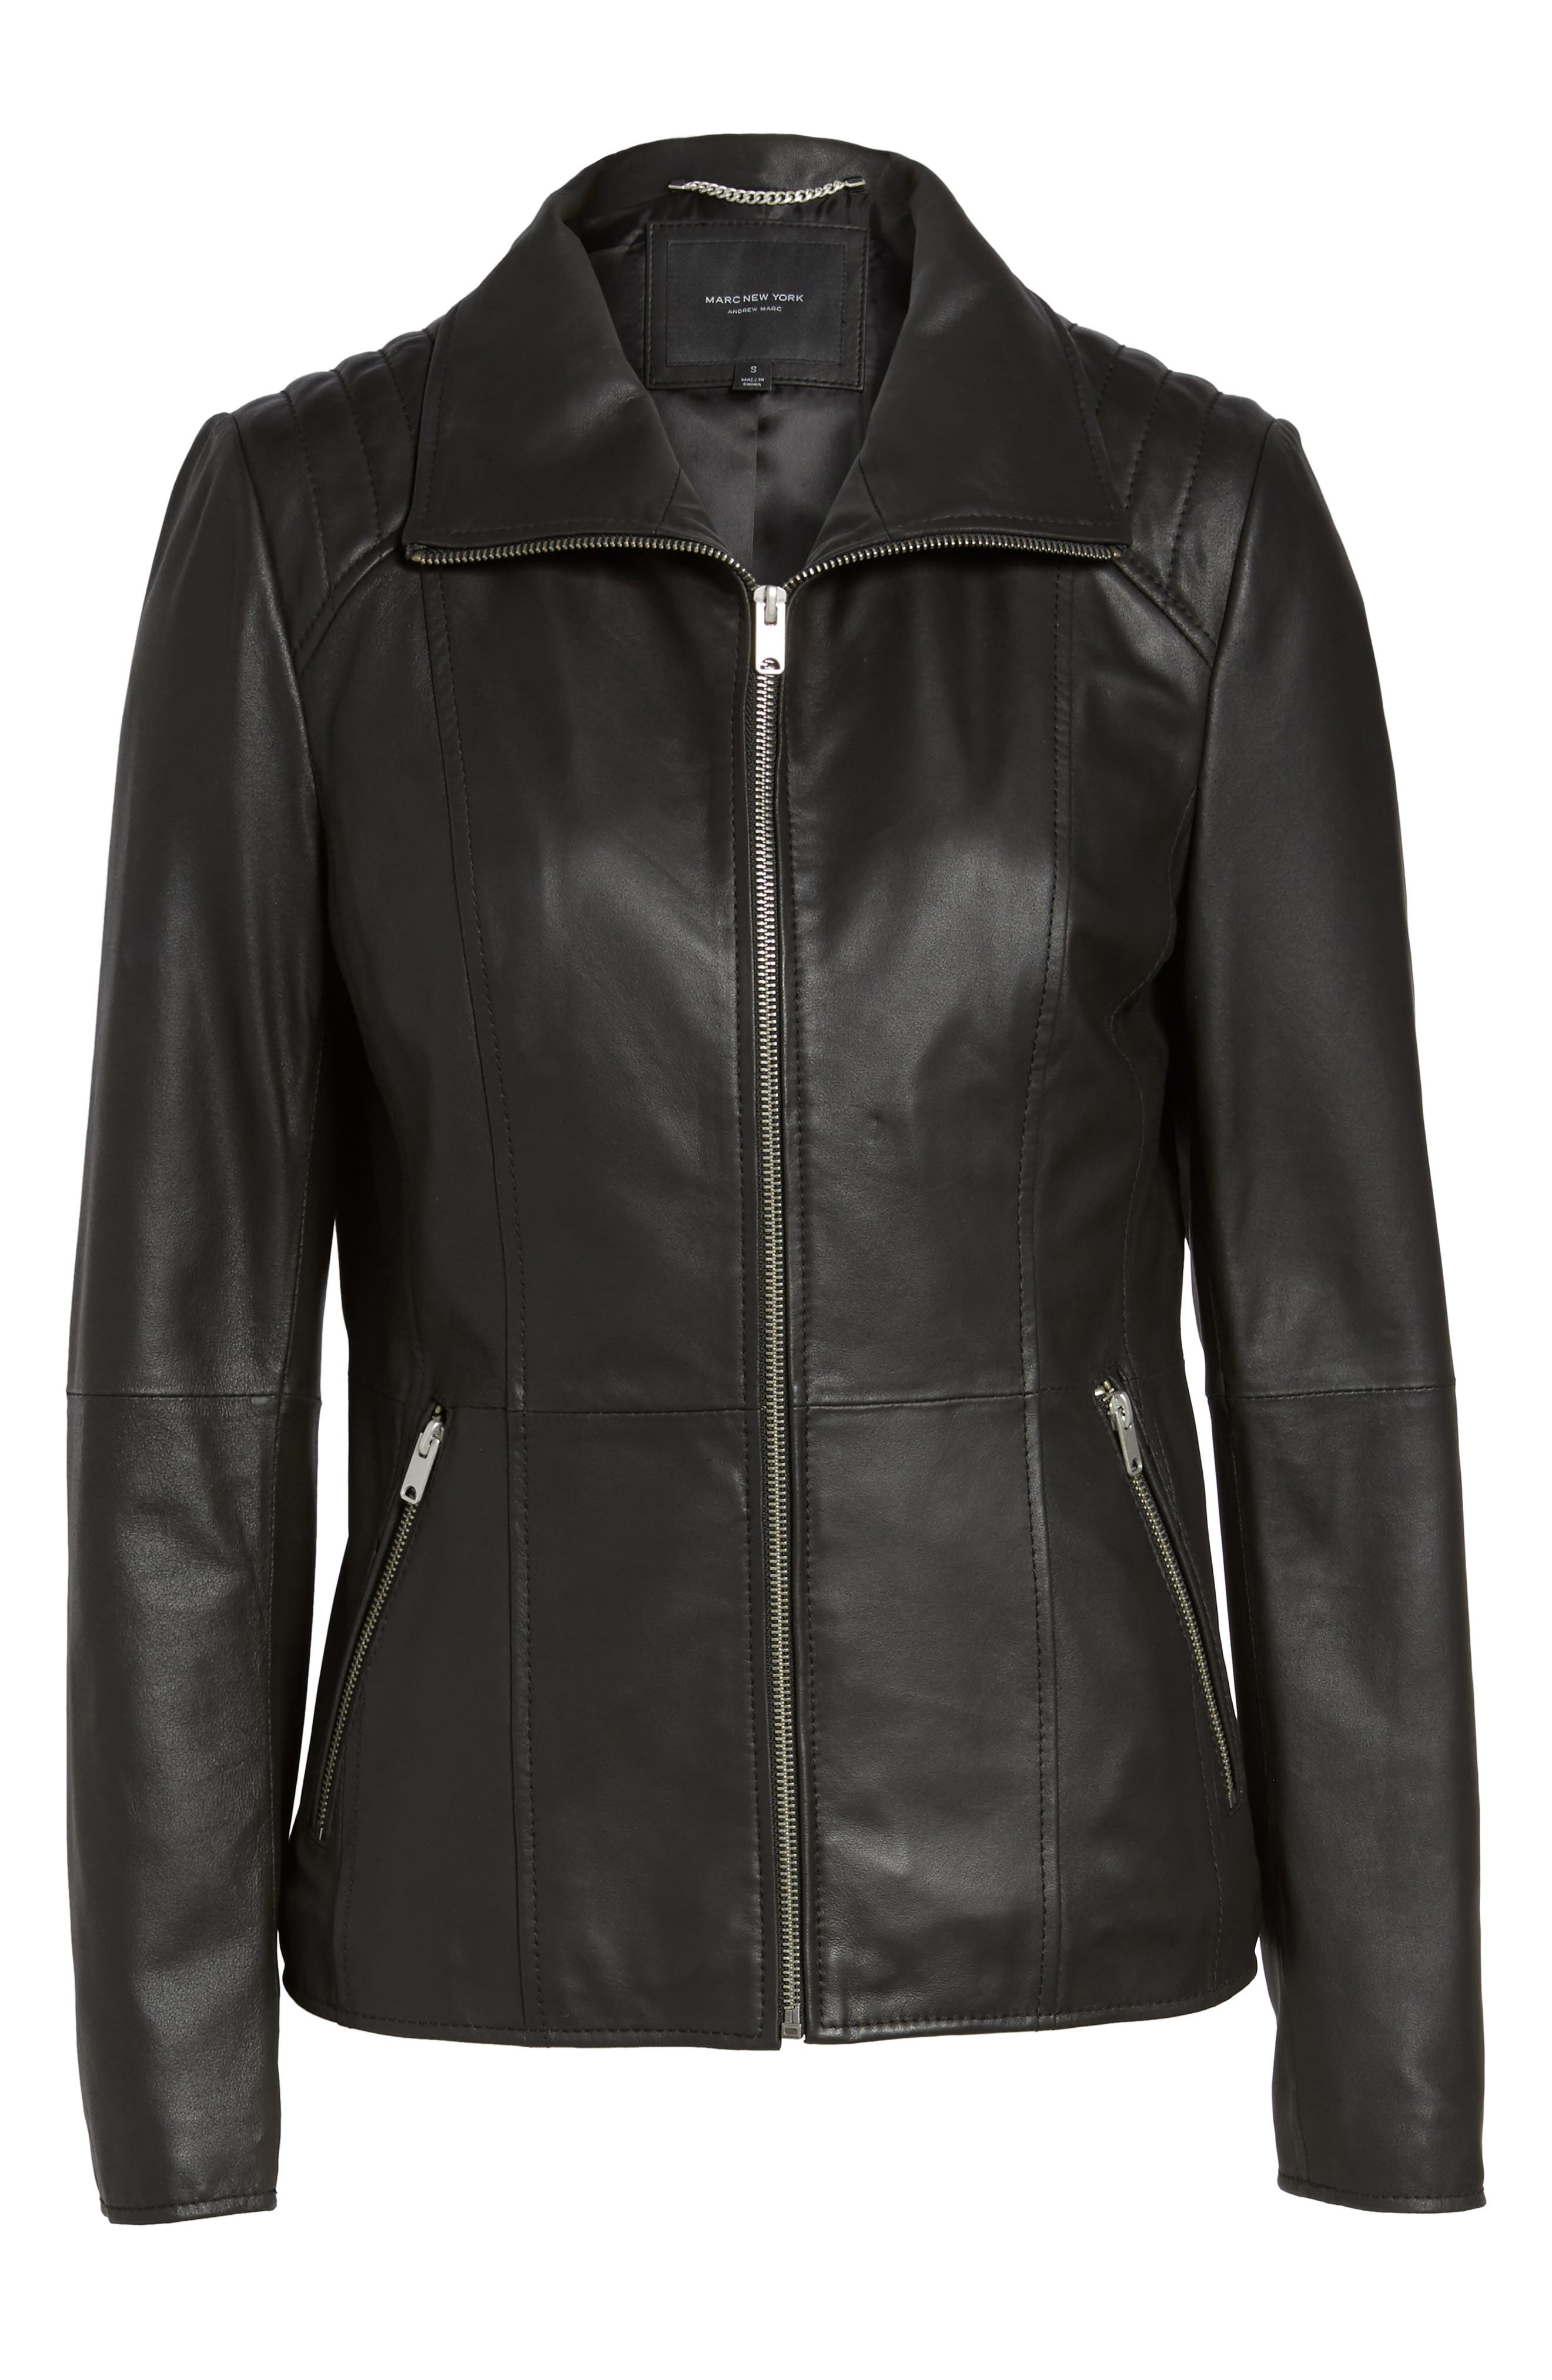 Fabian Feather Leather Jacket,                             Alternate thumbnail 6, color,                             Black